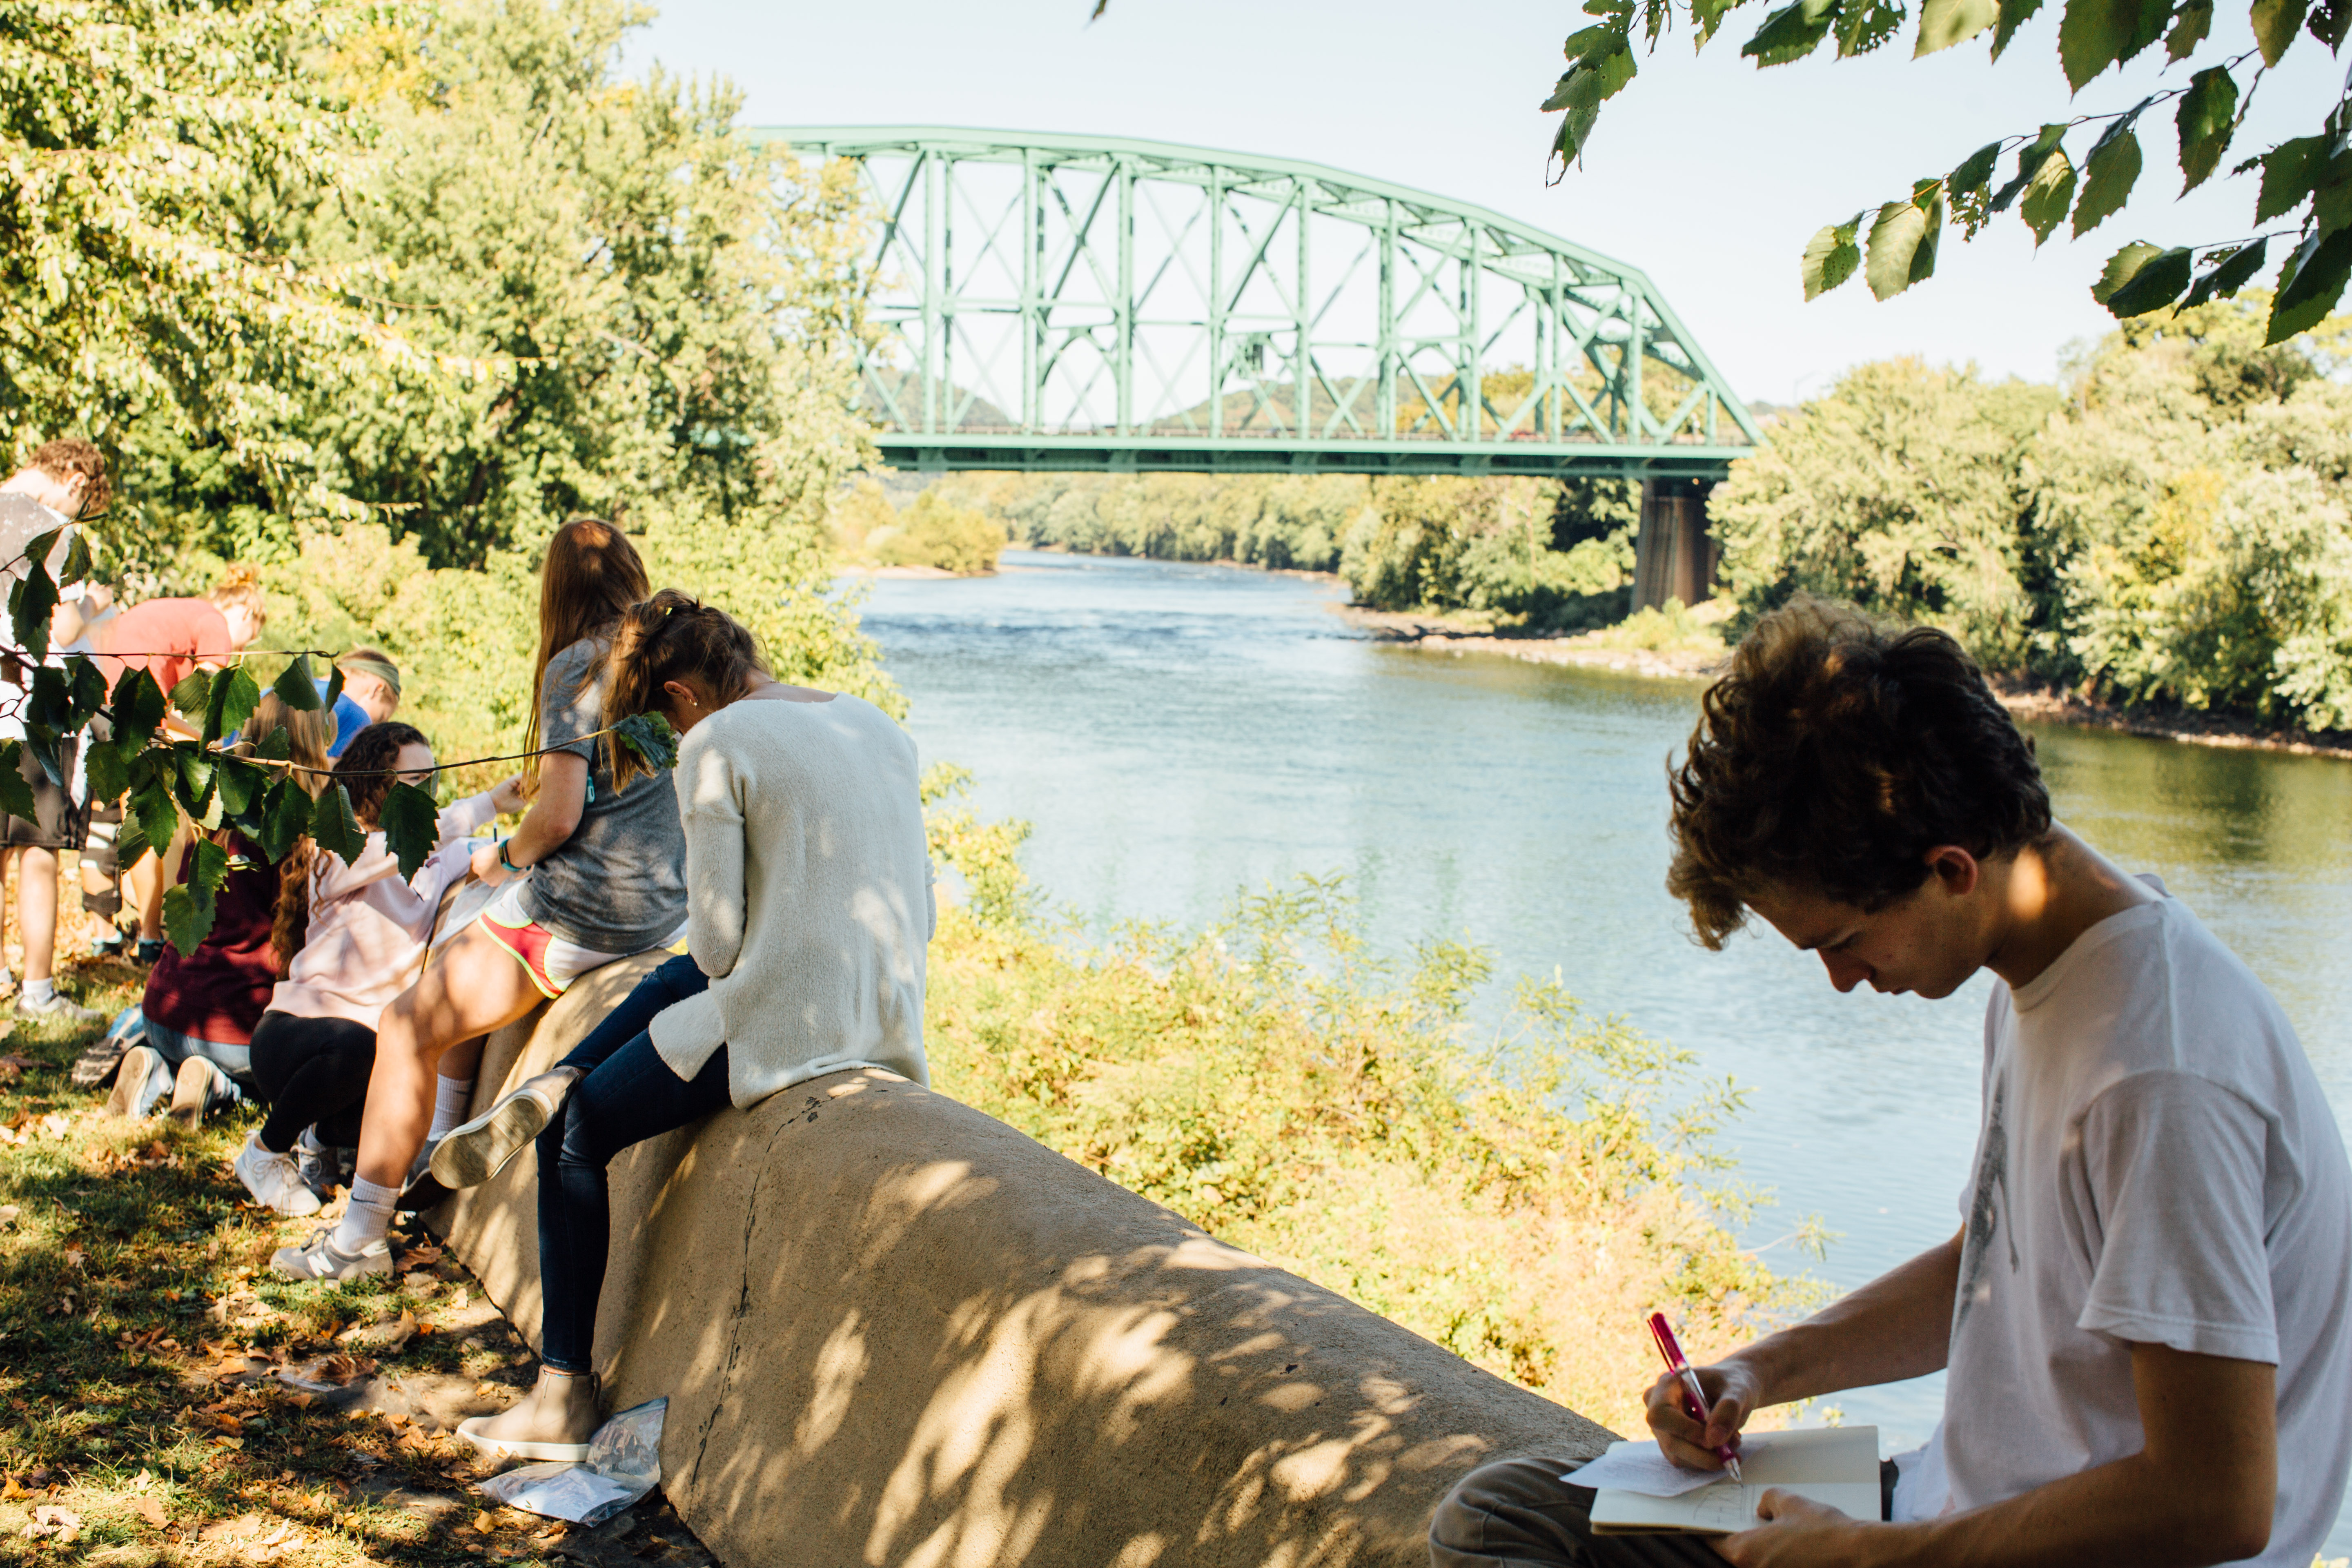 Students sketch a bridge outdoors while observing it.